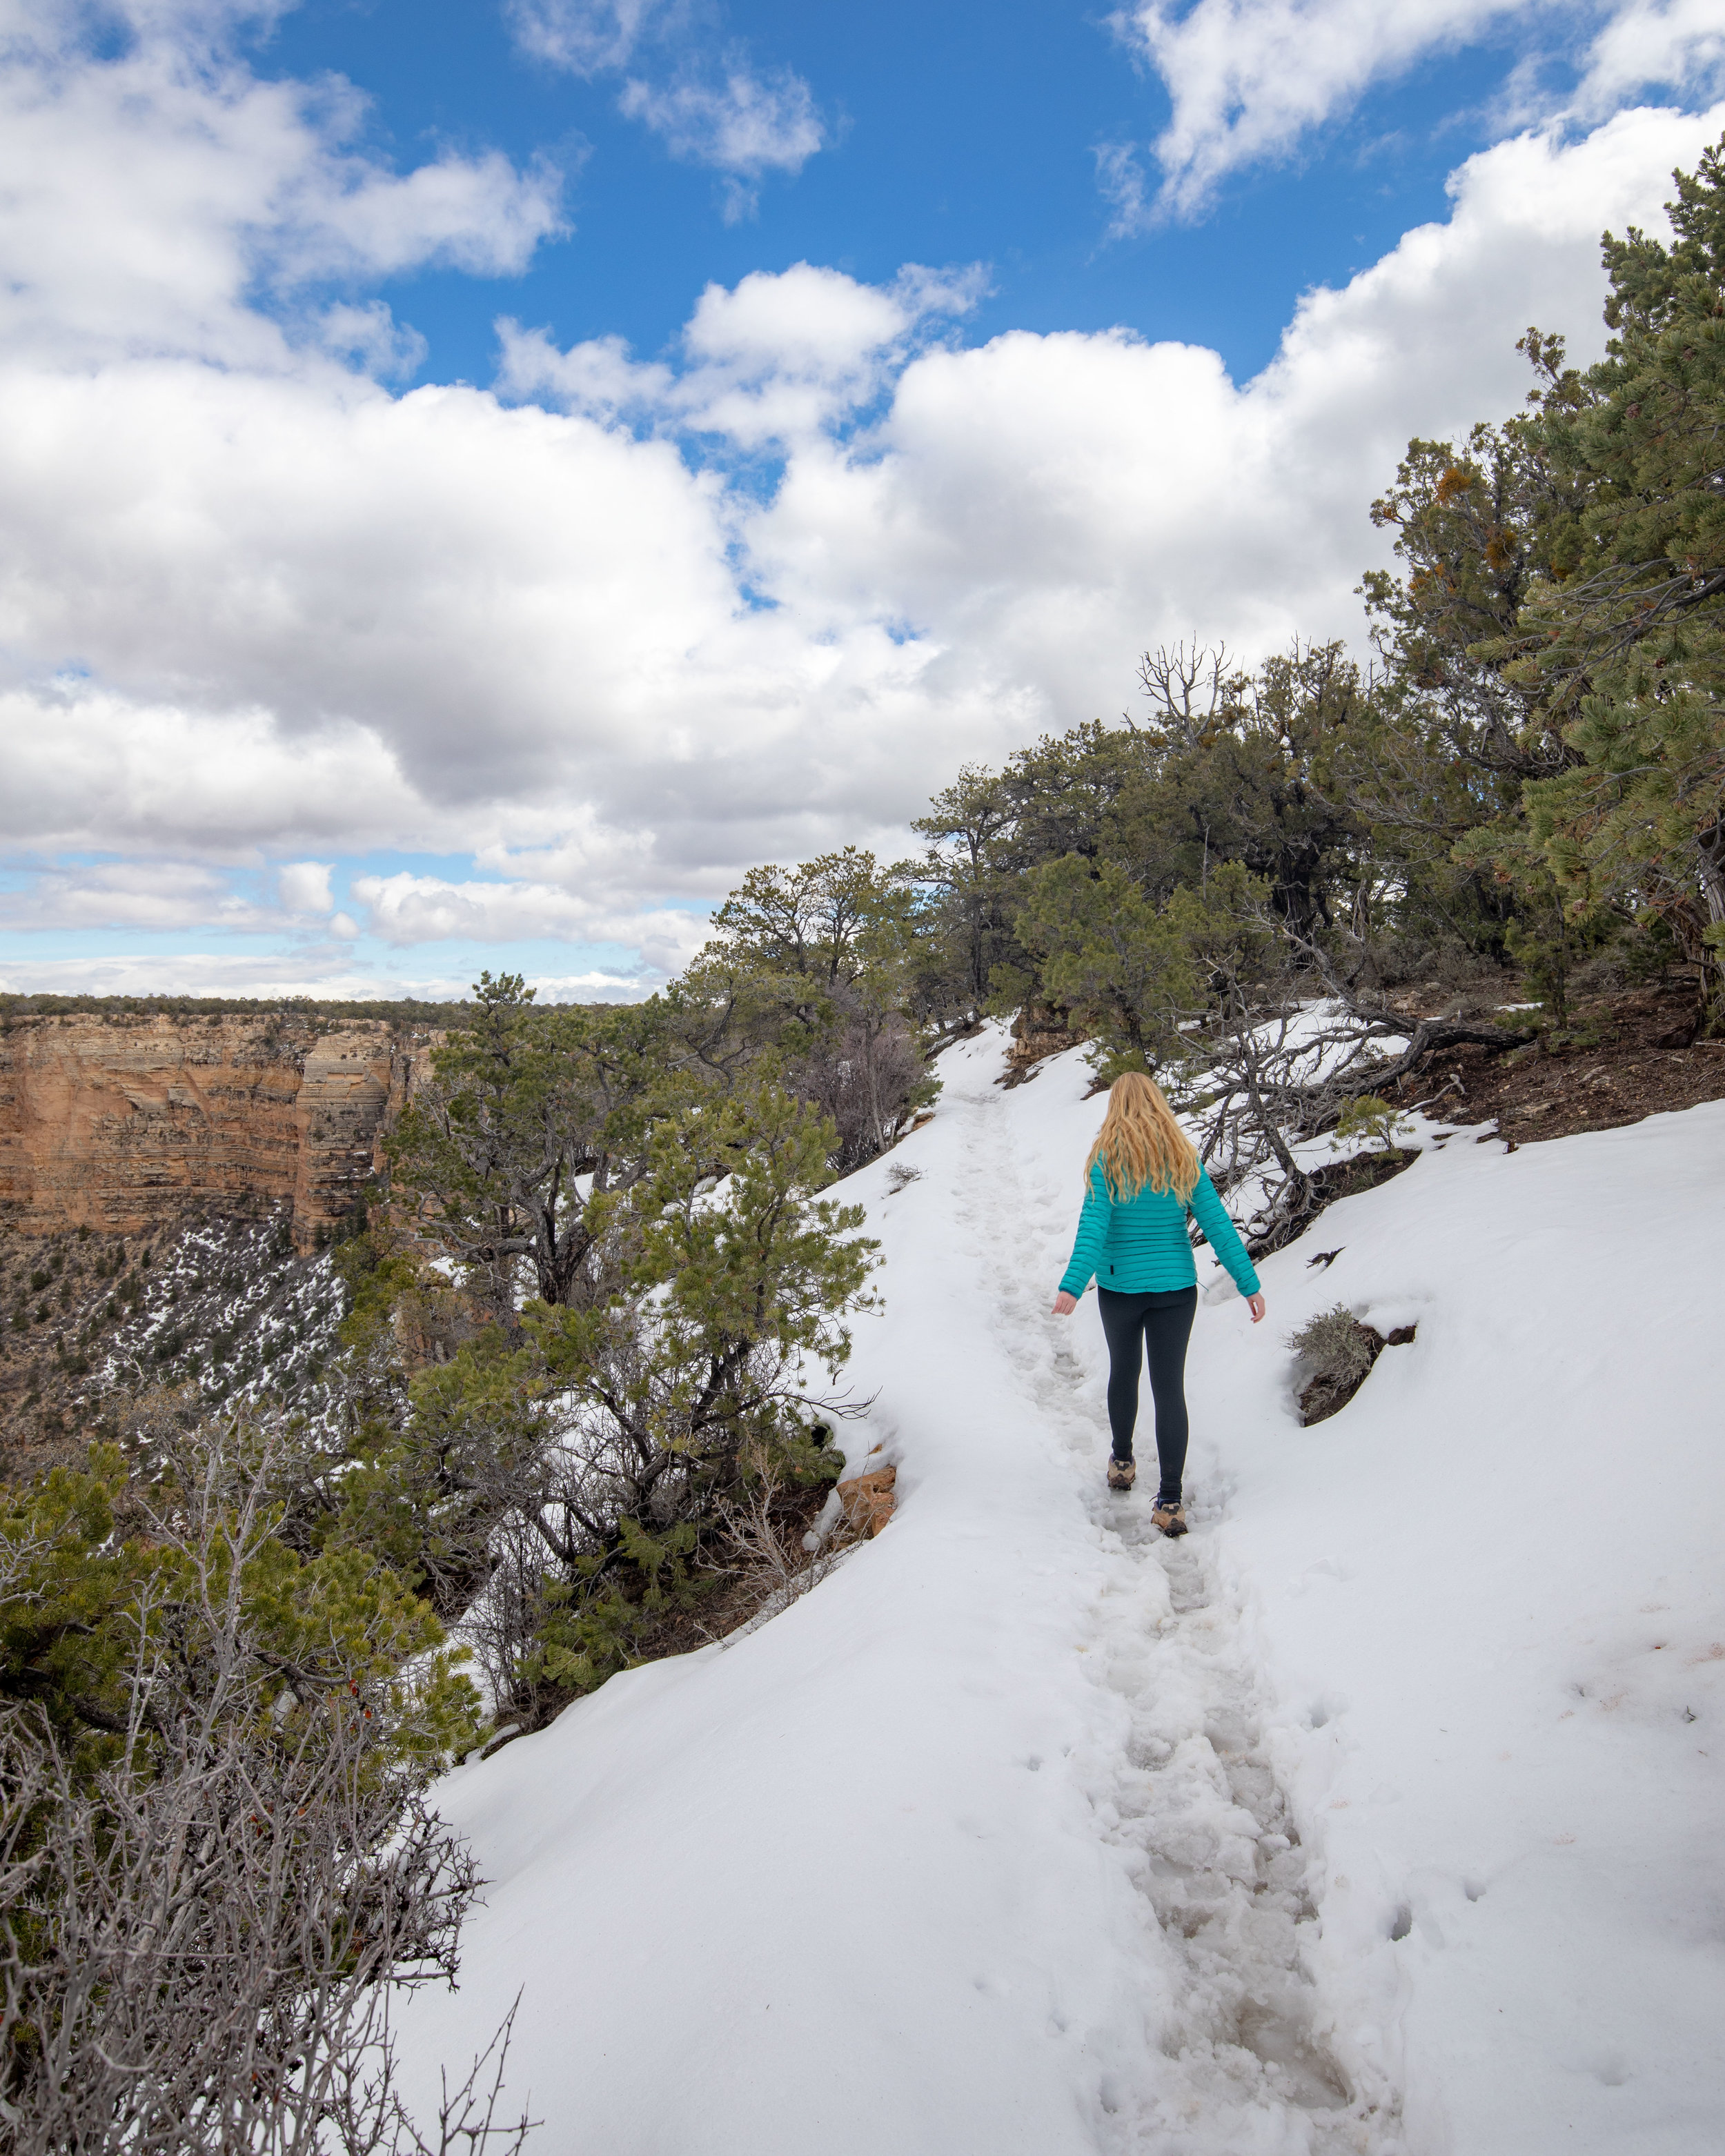 Snow and ice on the Rim Trail